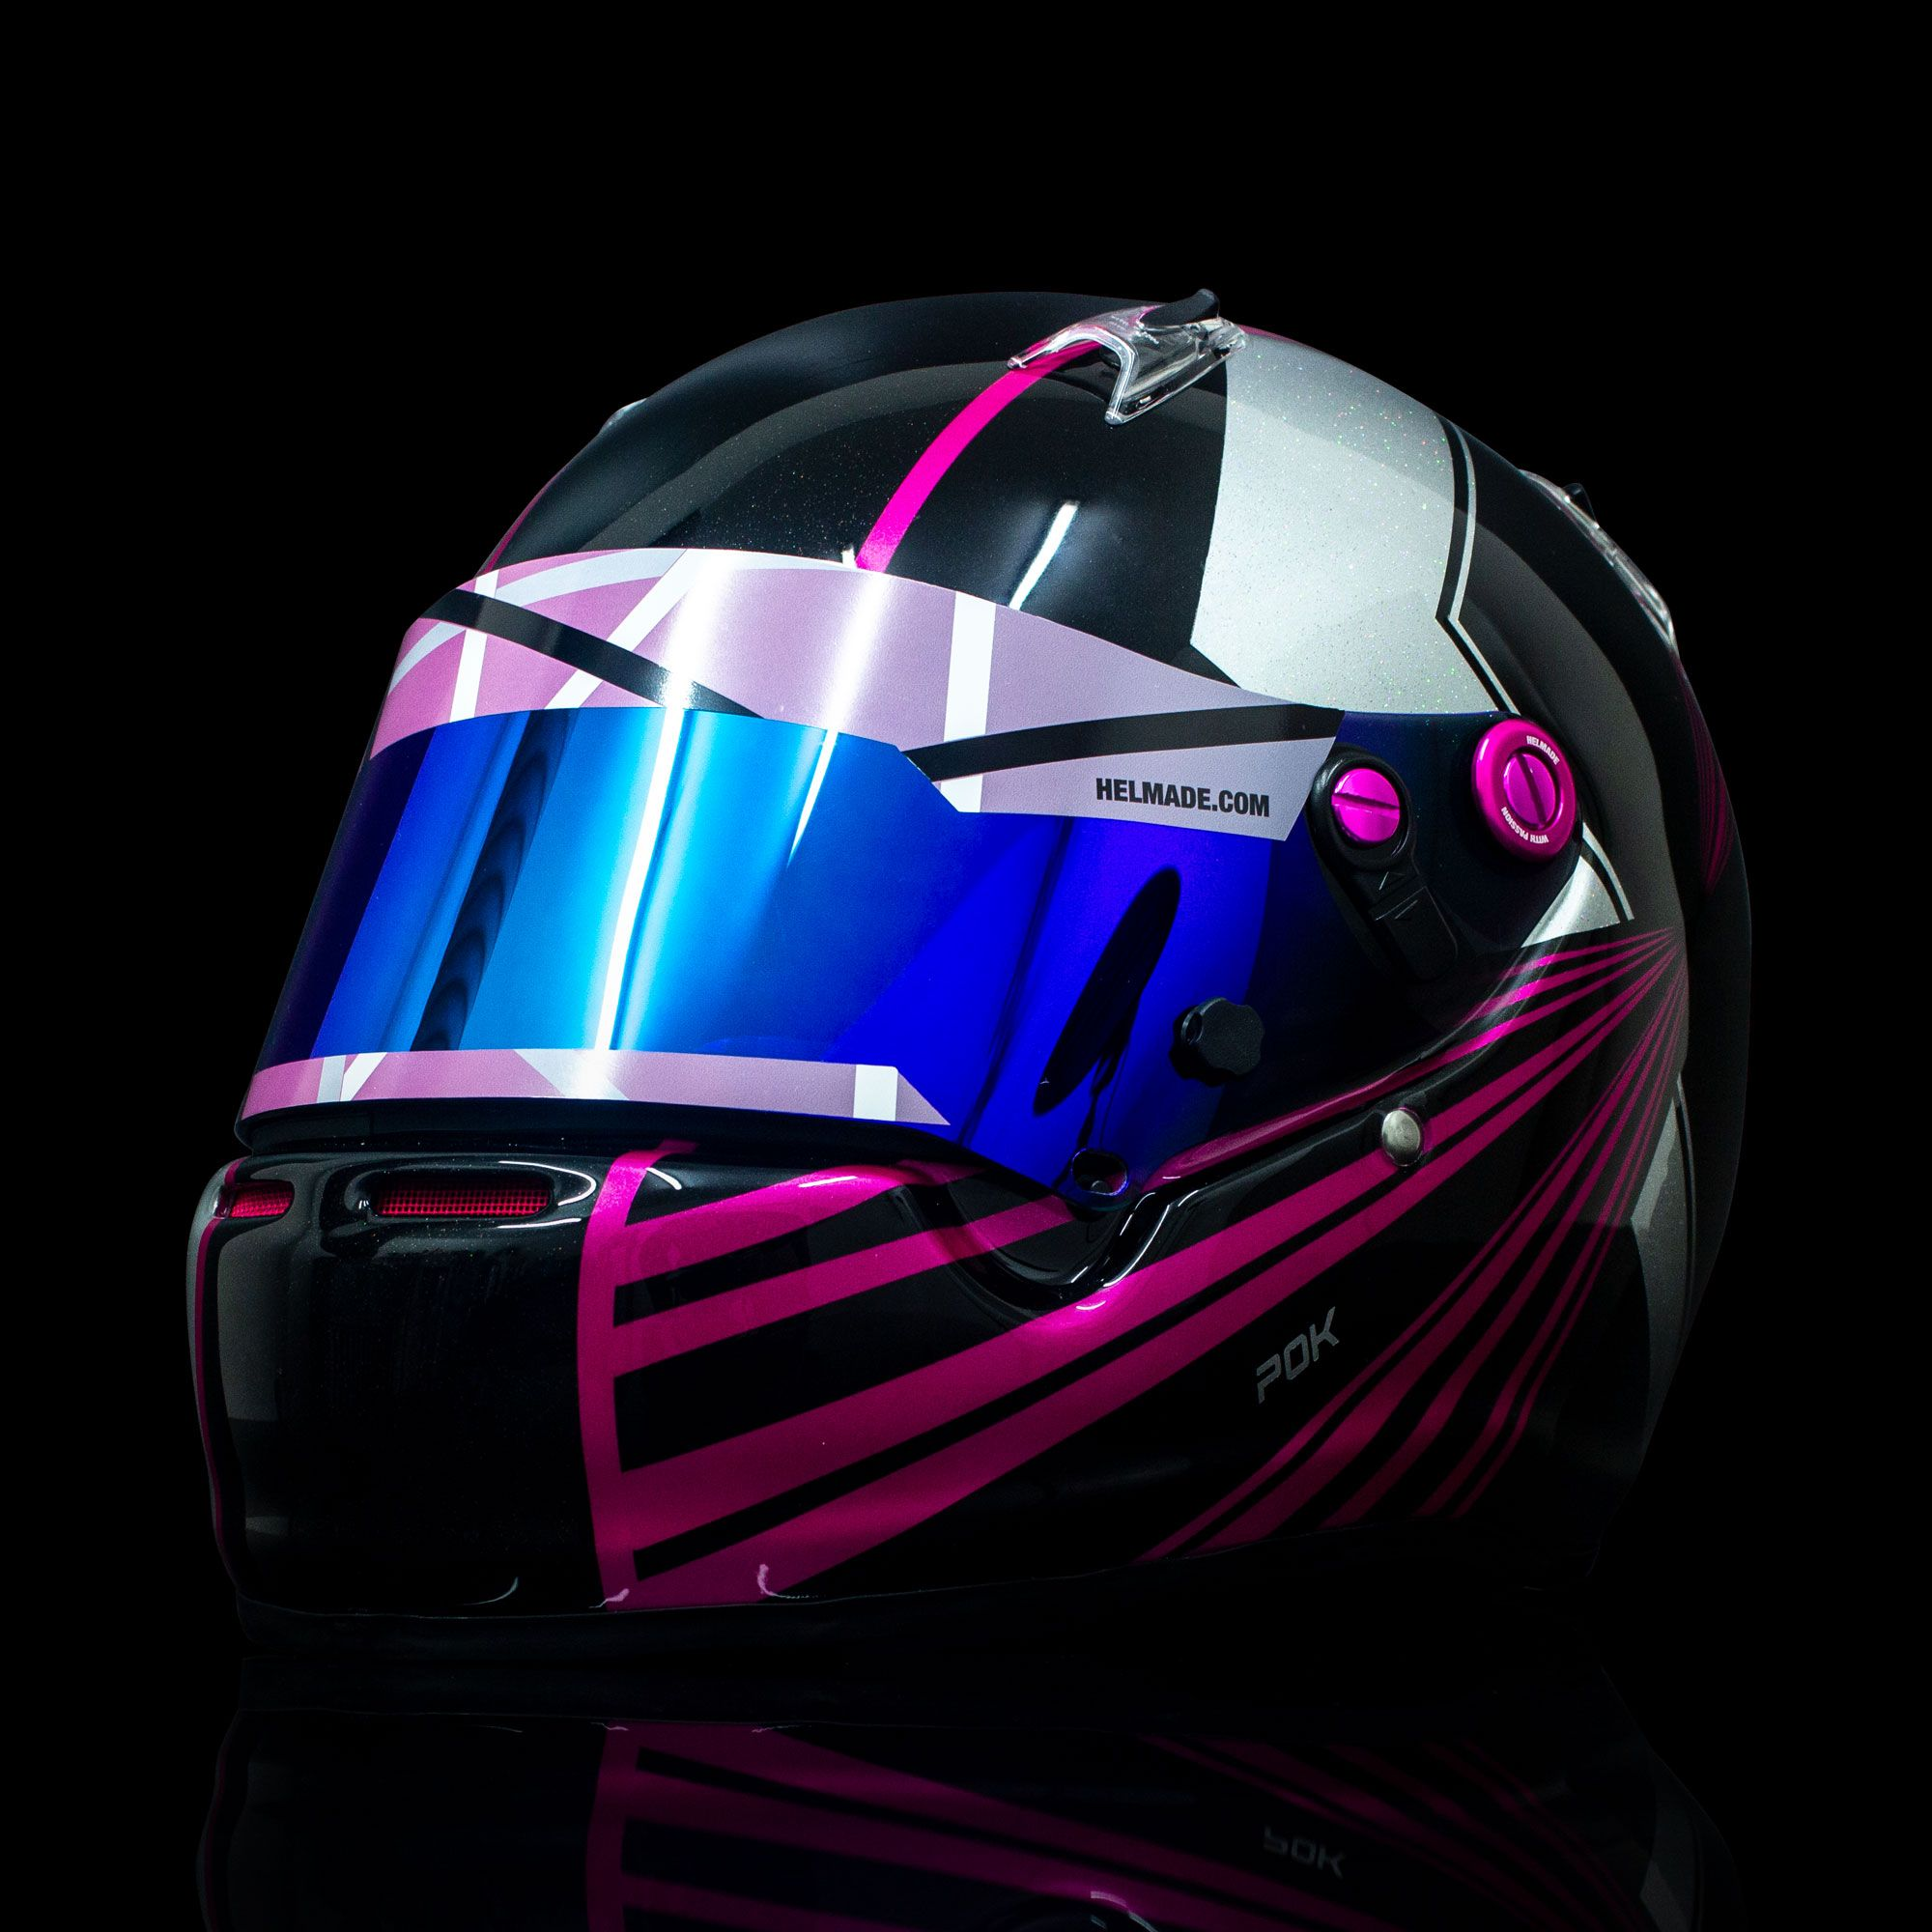 Asymetric one with a lot of pink! What a blast. 🤩‼️ Do you like it as much as we do? #helmade #withpassion #arai #ck6 #kartinghelmet #helmetdesign #helmdesign #custompaint #customhelmet #designyourown #racingislife